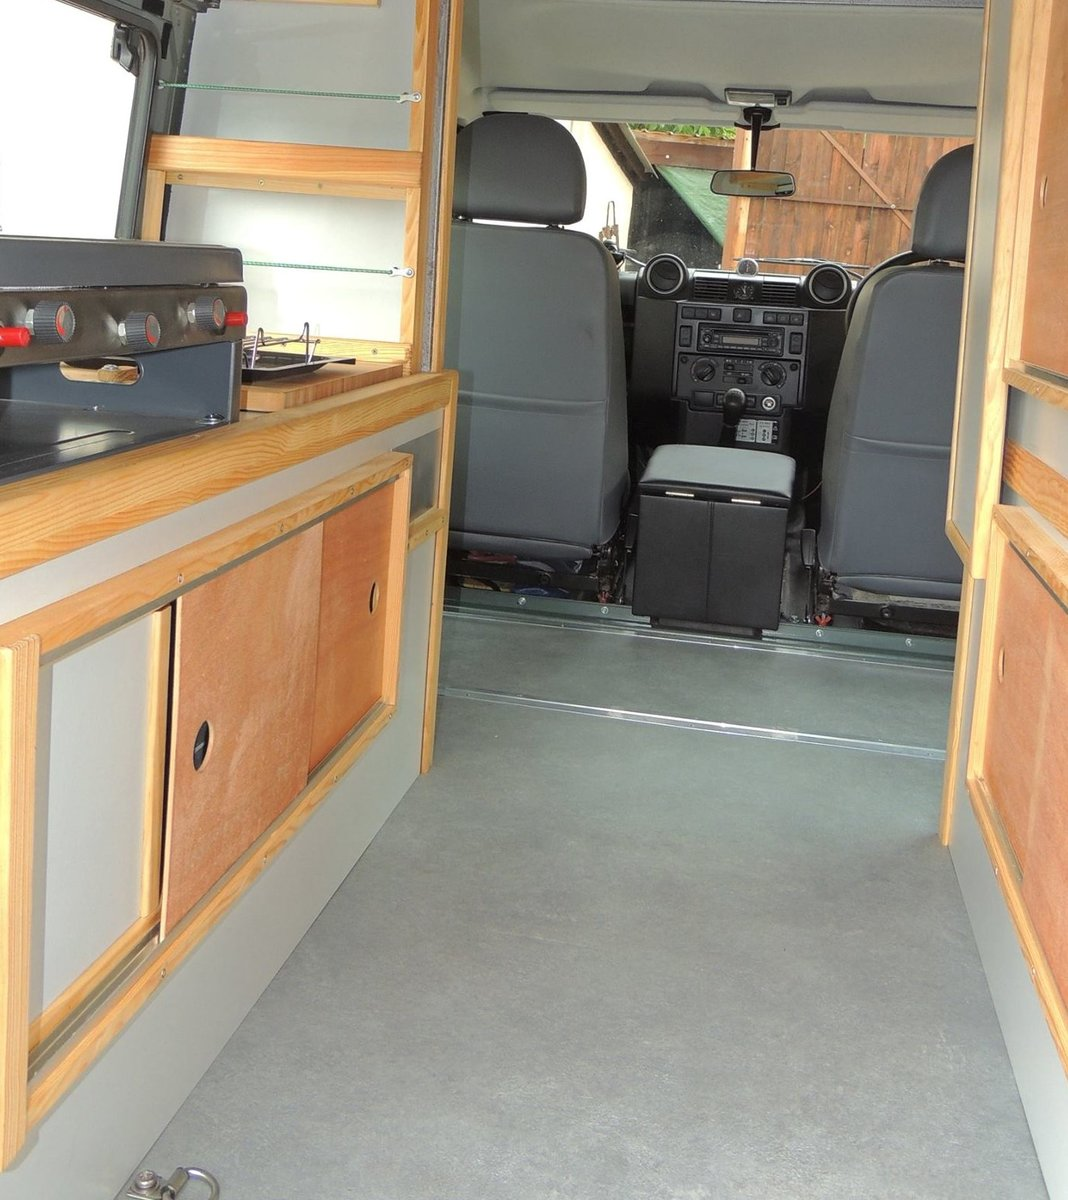 2008 Land Rover Defender 110 Puma - Camper For Sale (picture 2 of 5)